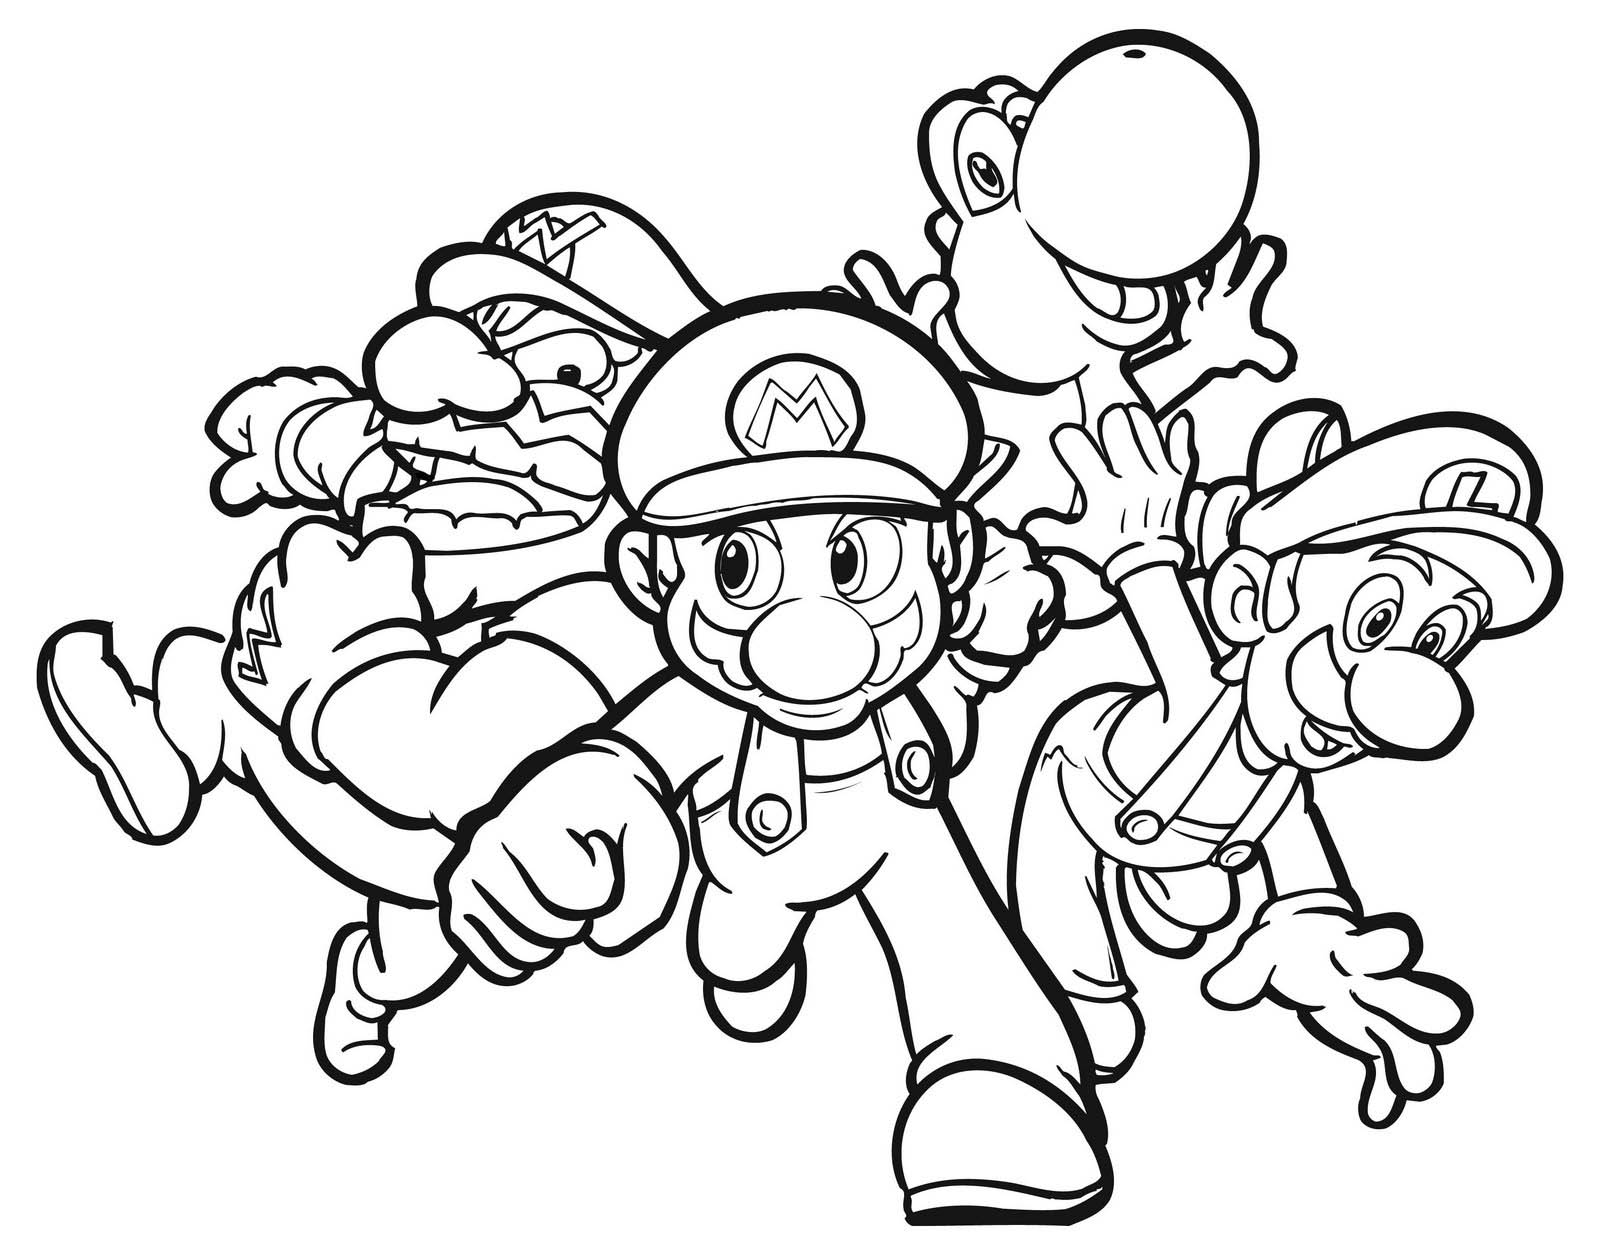 printable mario coloring pages coloring pages mario coloring pages free and printable printable coloring pages mario